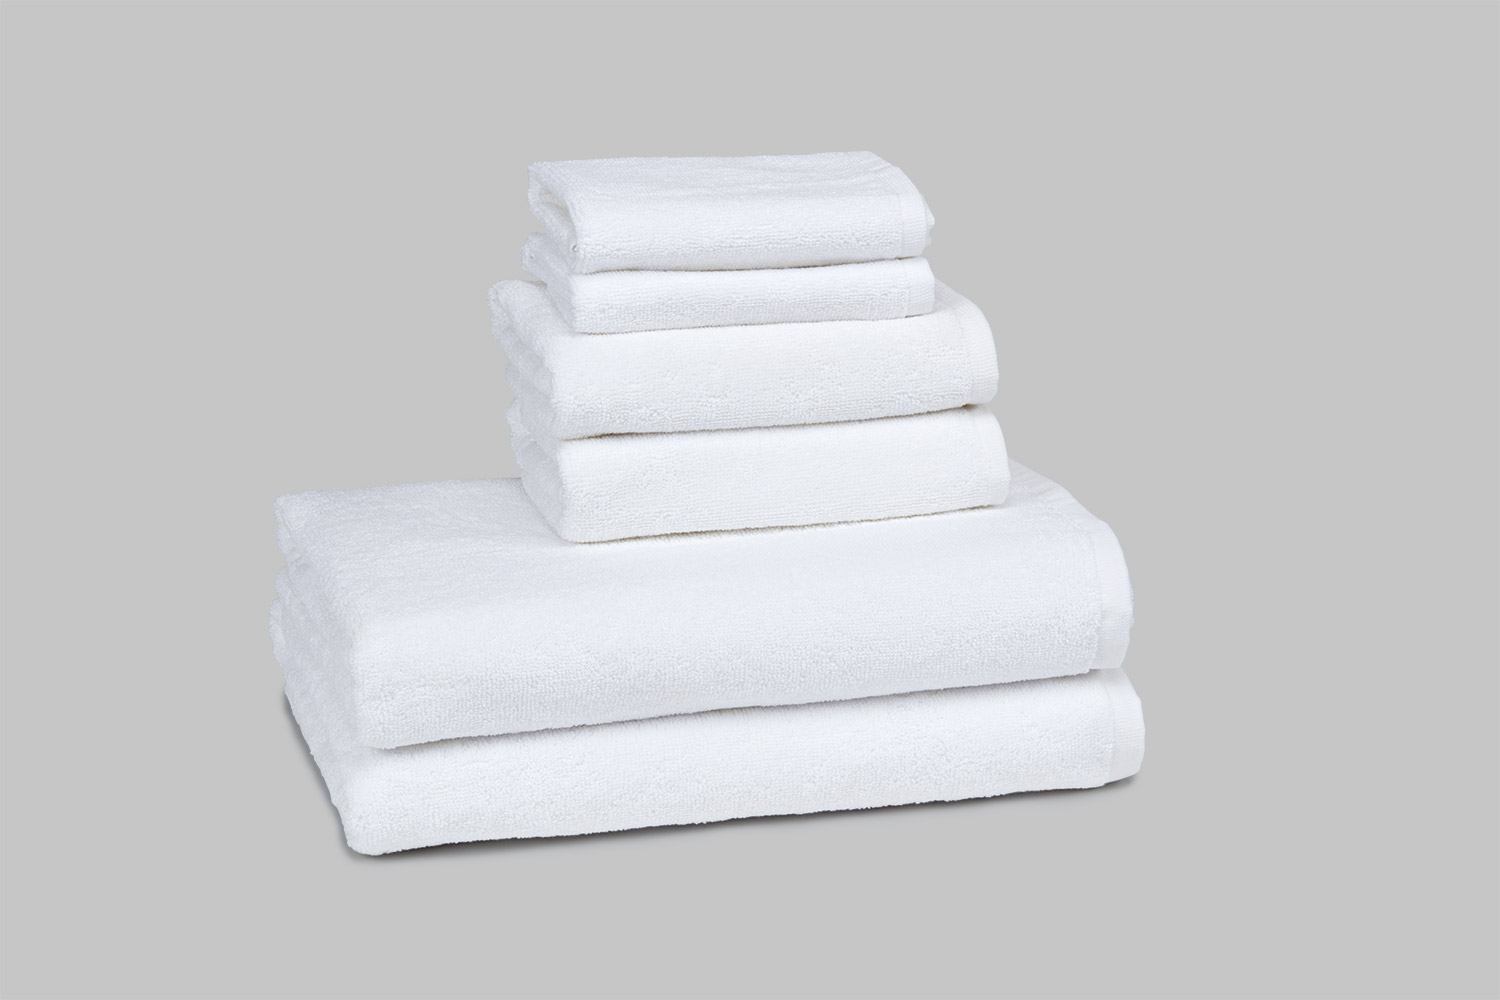 Double Loop Towel – White